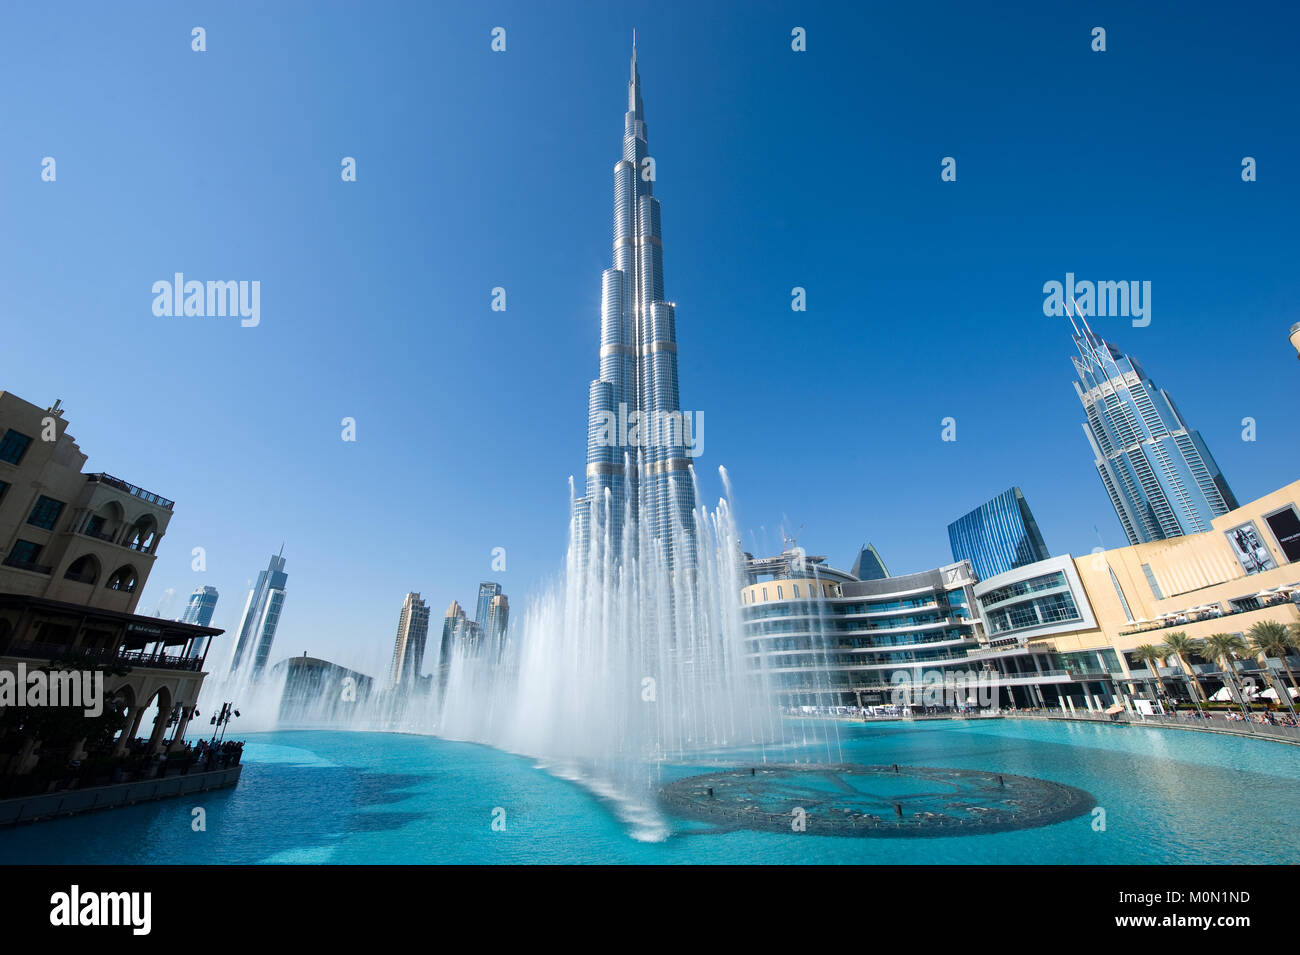 DUBAI, UNITED ARAB EMIRATES - JAN 02, 2018: Fountainshow in front of the Burj Khalifa in the center of Dubai, it - Stock Image